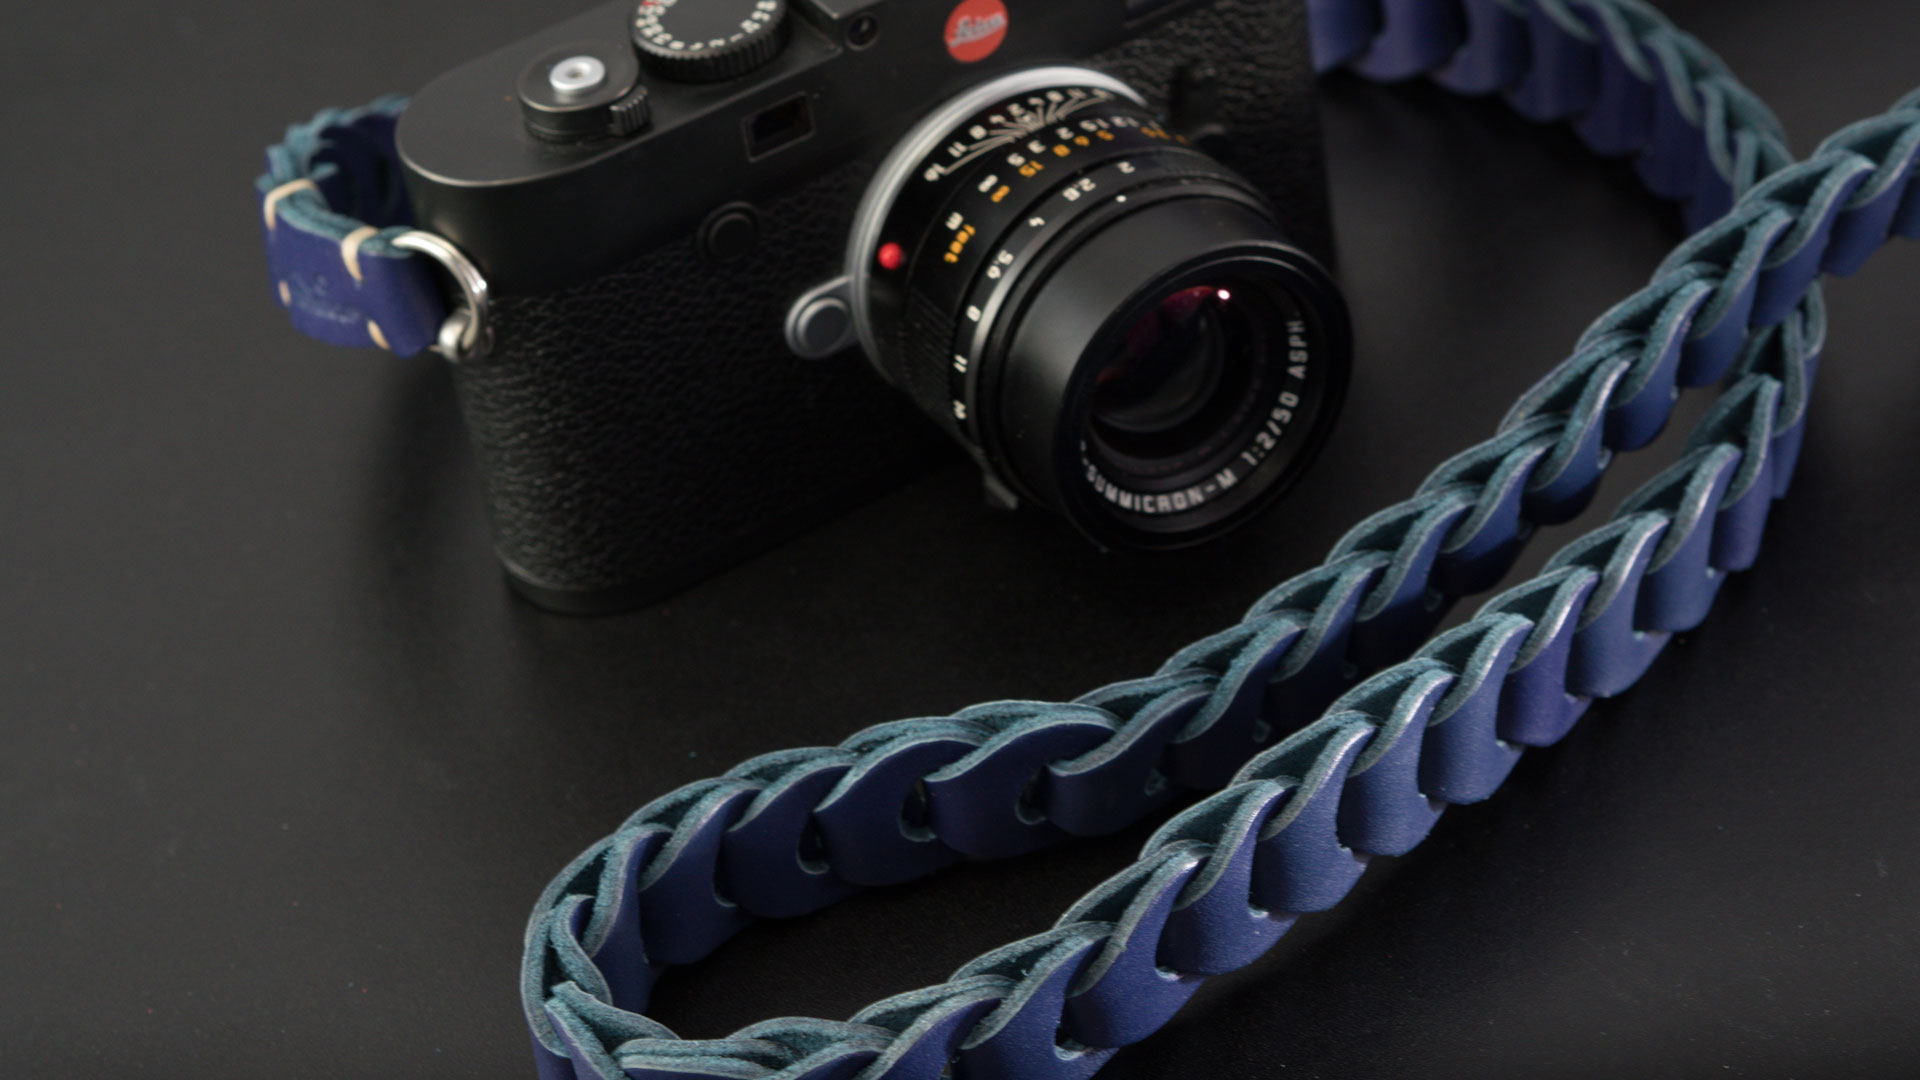 leica m strap, leather camera strap, handmade leather camera strap, vintage camera straps, leica camera strap, handmade camera strap, blue camera strap, mirrorless camera strap